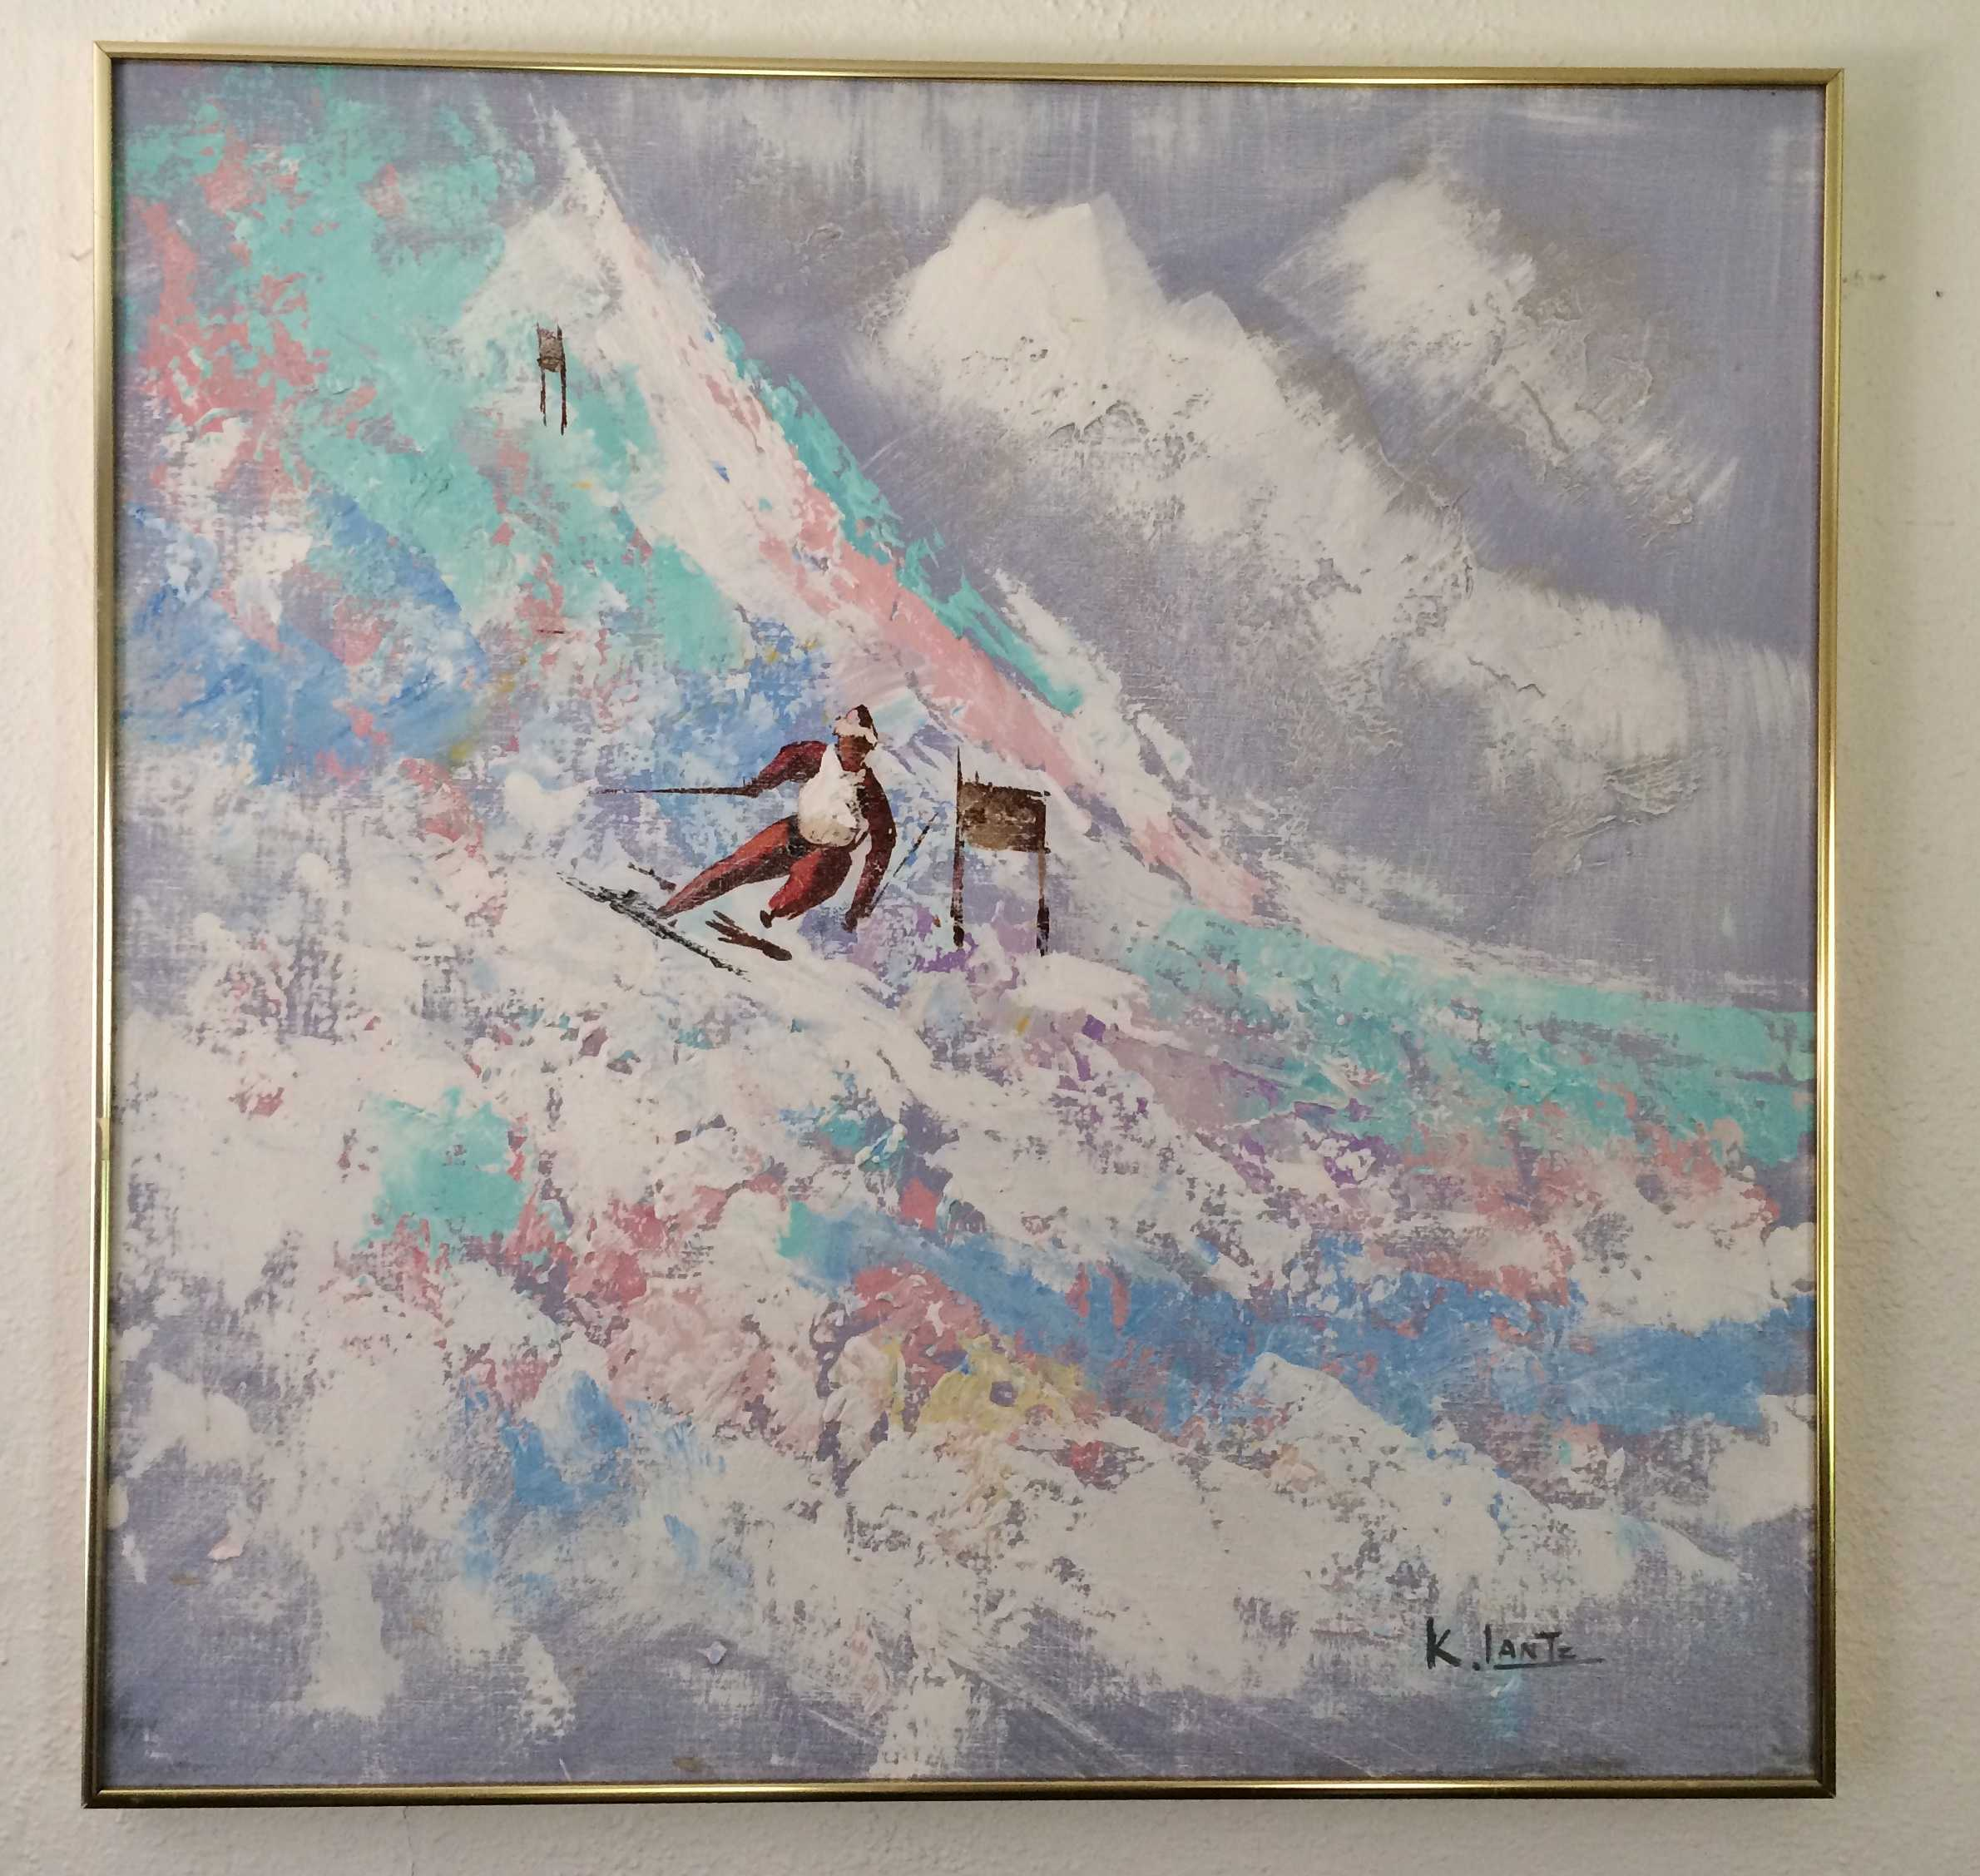 Unique ski art page 2 ski art collection painting by artist k lantz with lots of texture and life please see detailed image for condition measures 30 x 30 in metal frame with no glass jeuxipadfo Choice Image